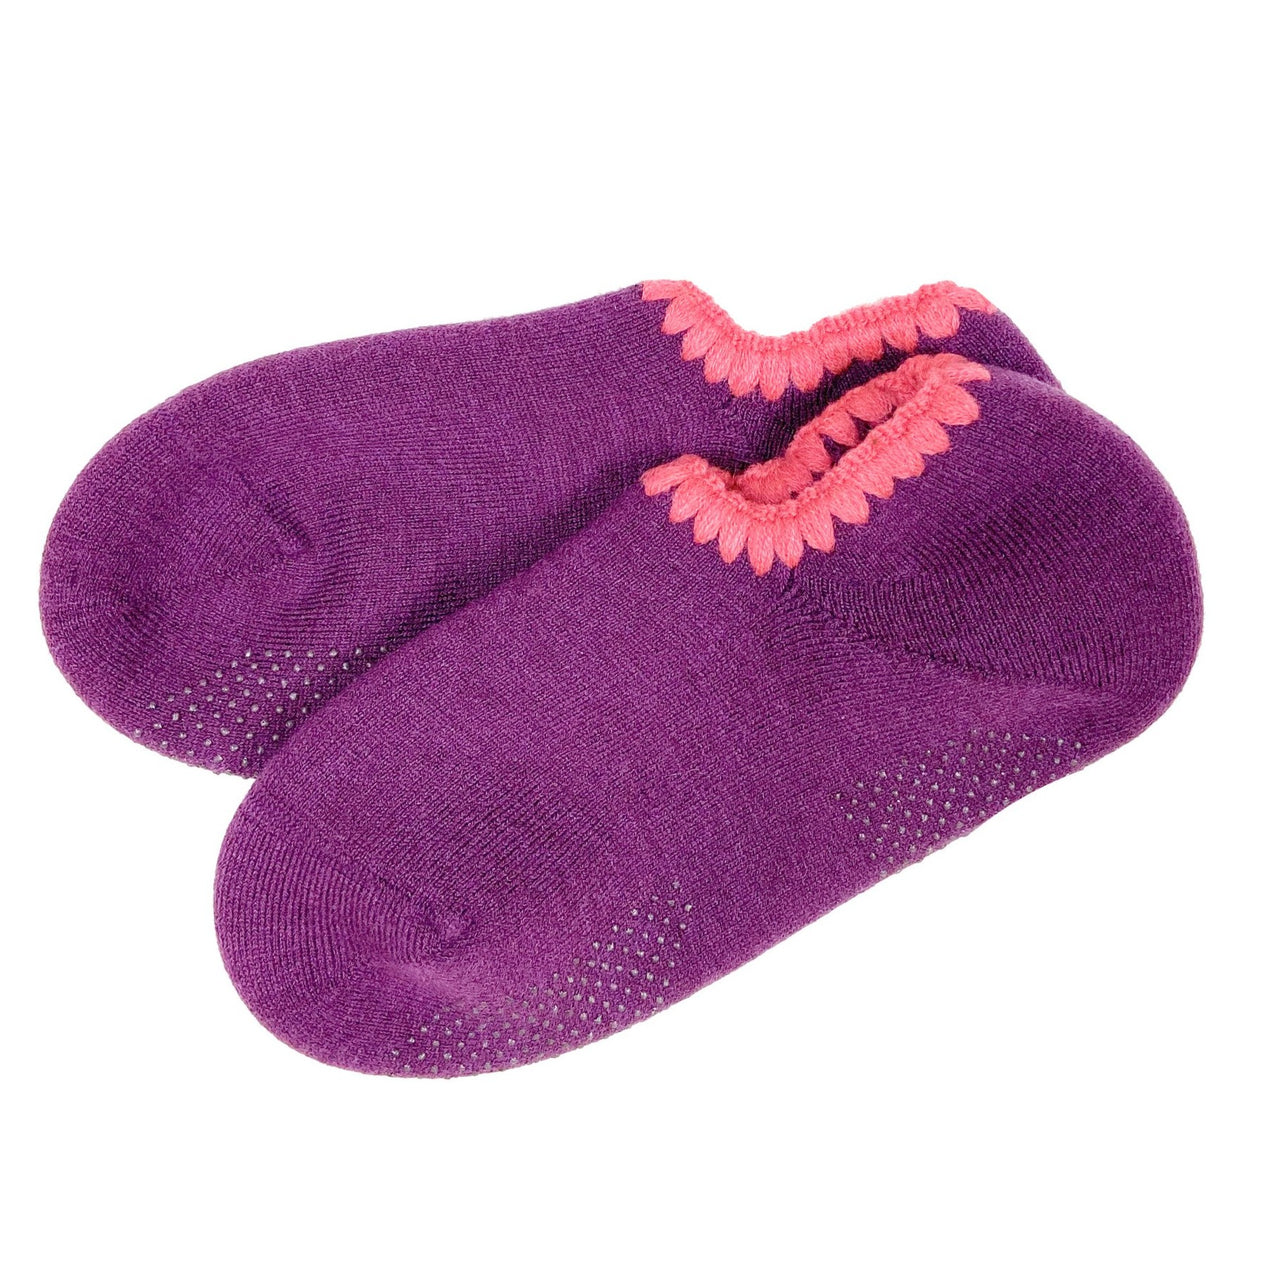 CHERRYSTONE® Slipper Socks | Classic Color with Grips | Purple - CHERRYSTONE